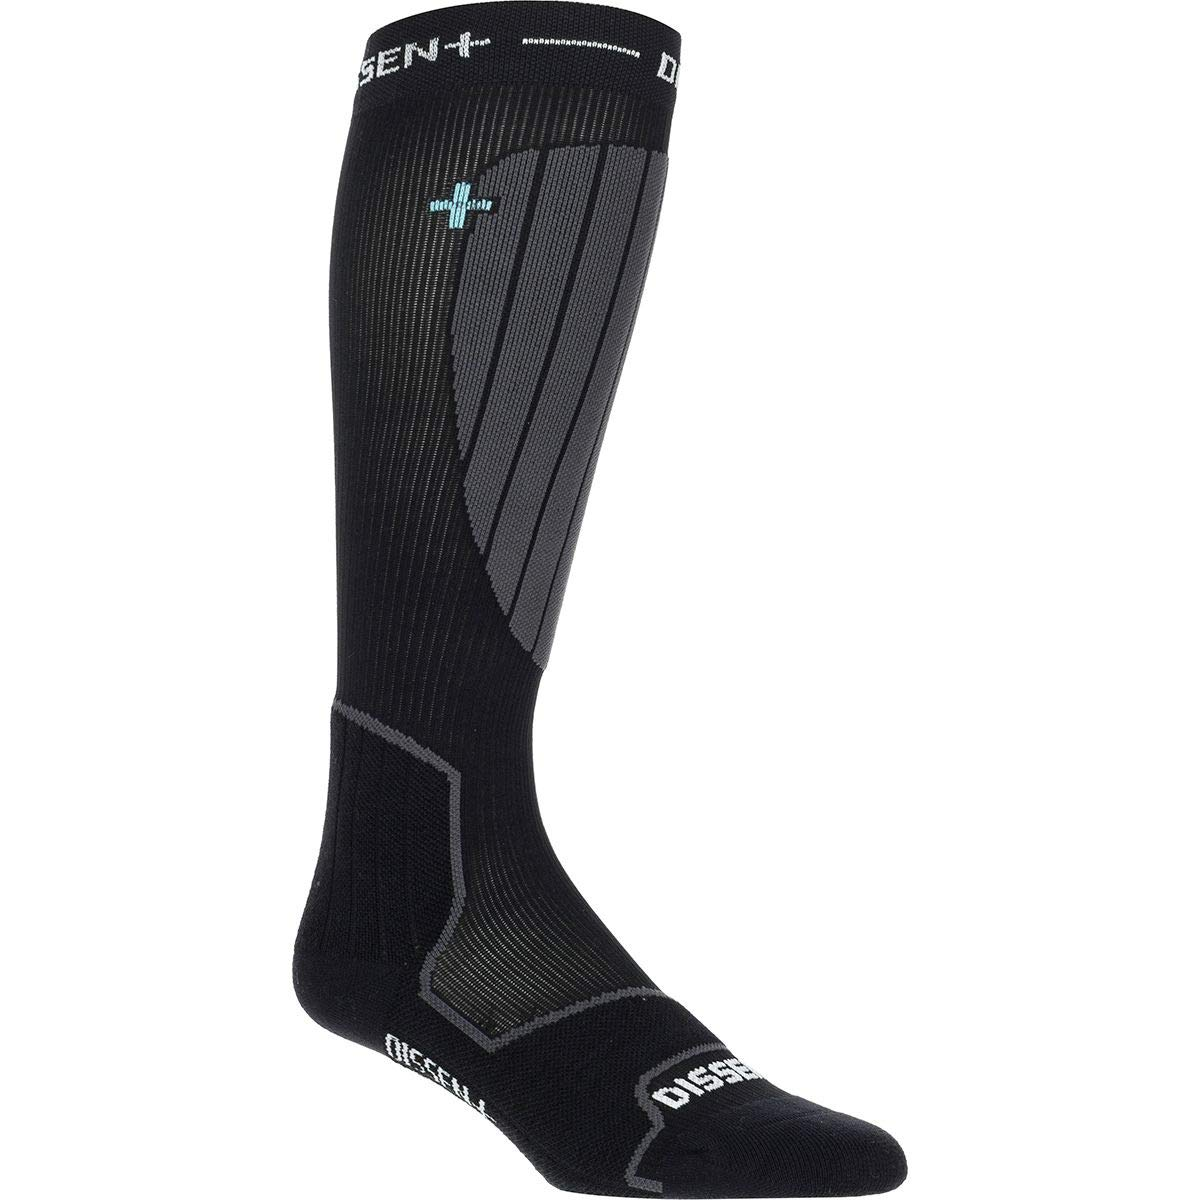 Dissent Ski GFX Compression Hybrid DLX-Wool Sock One Color, S